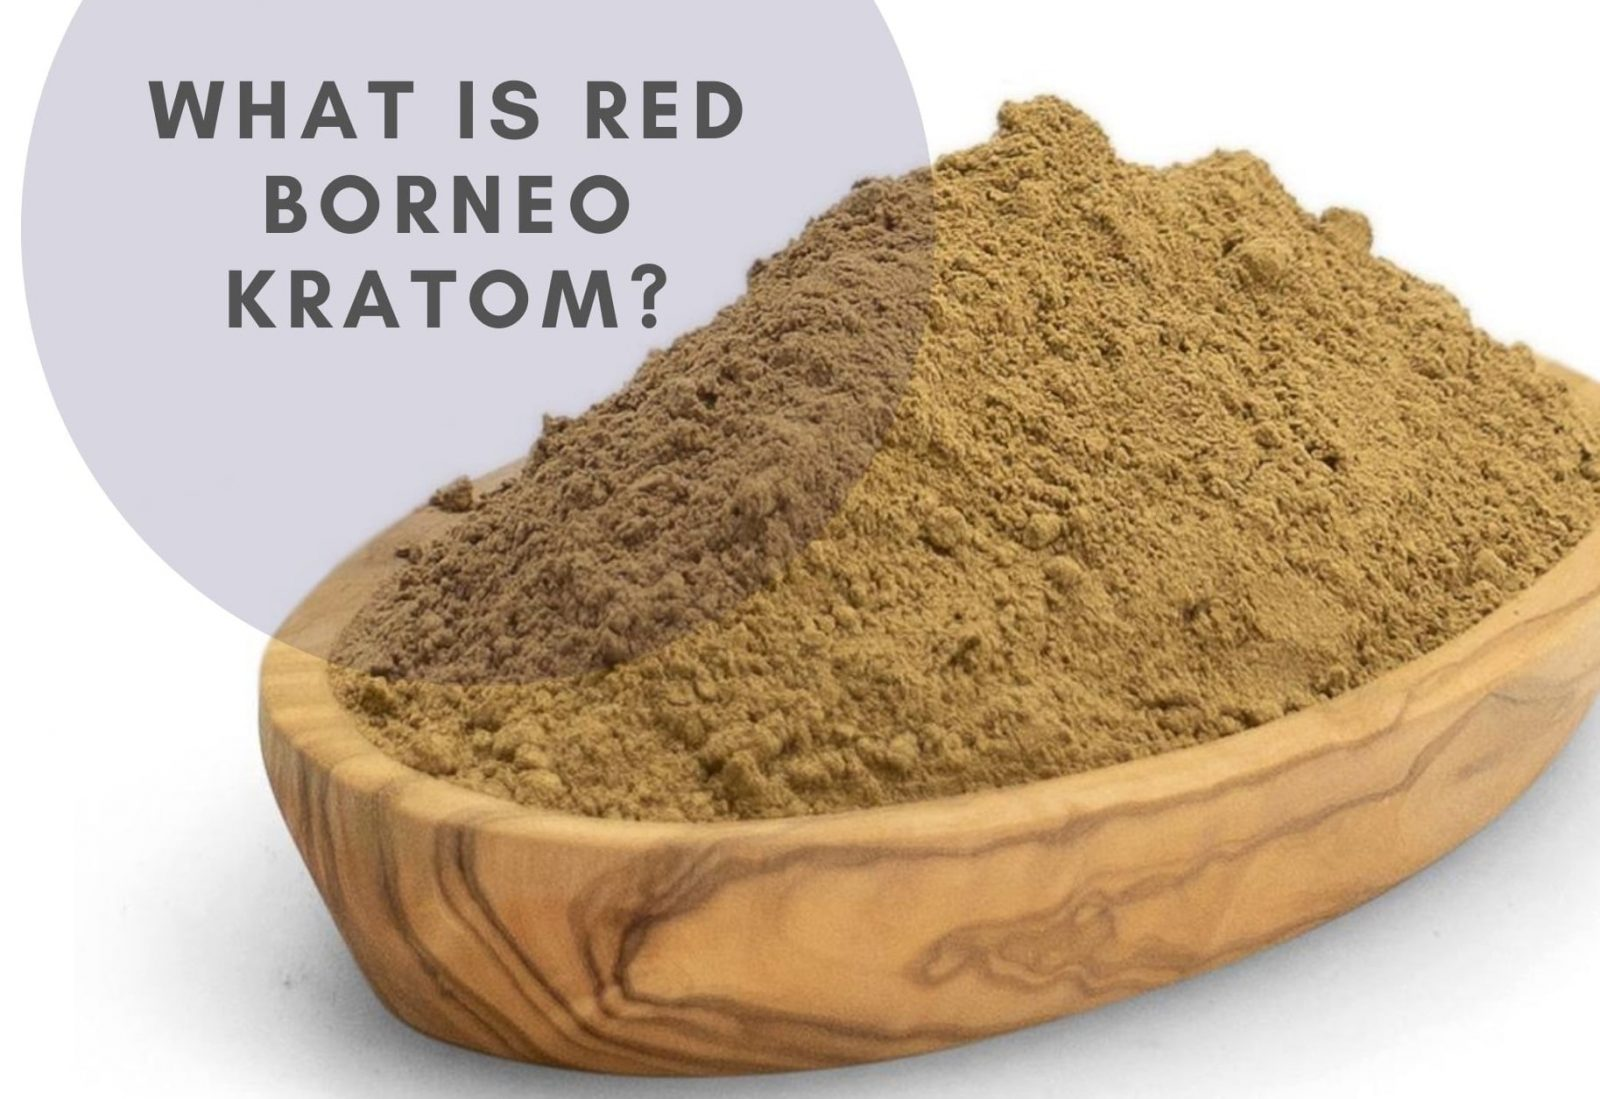 What is Red Borneo Kratom?